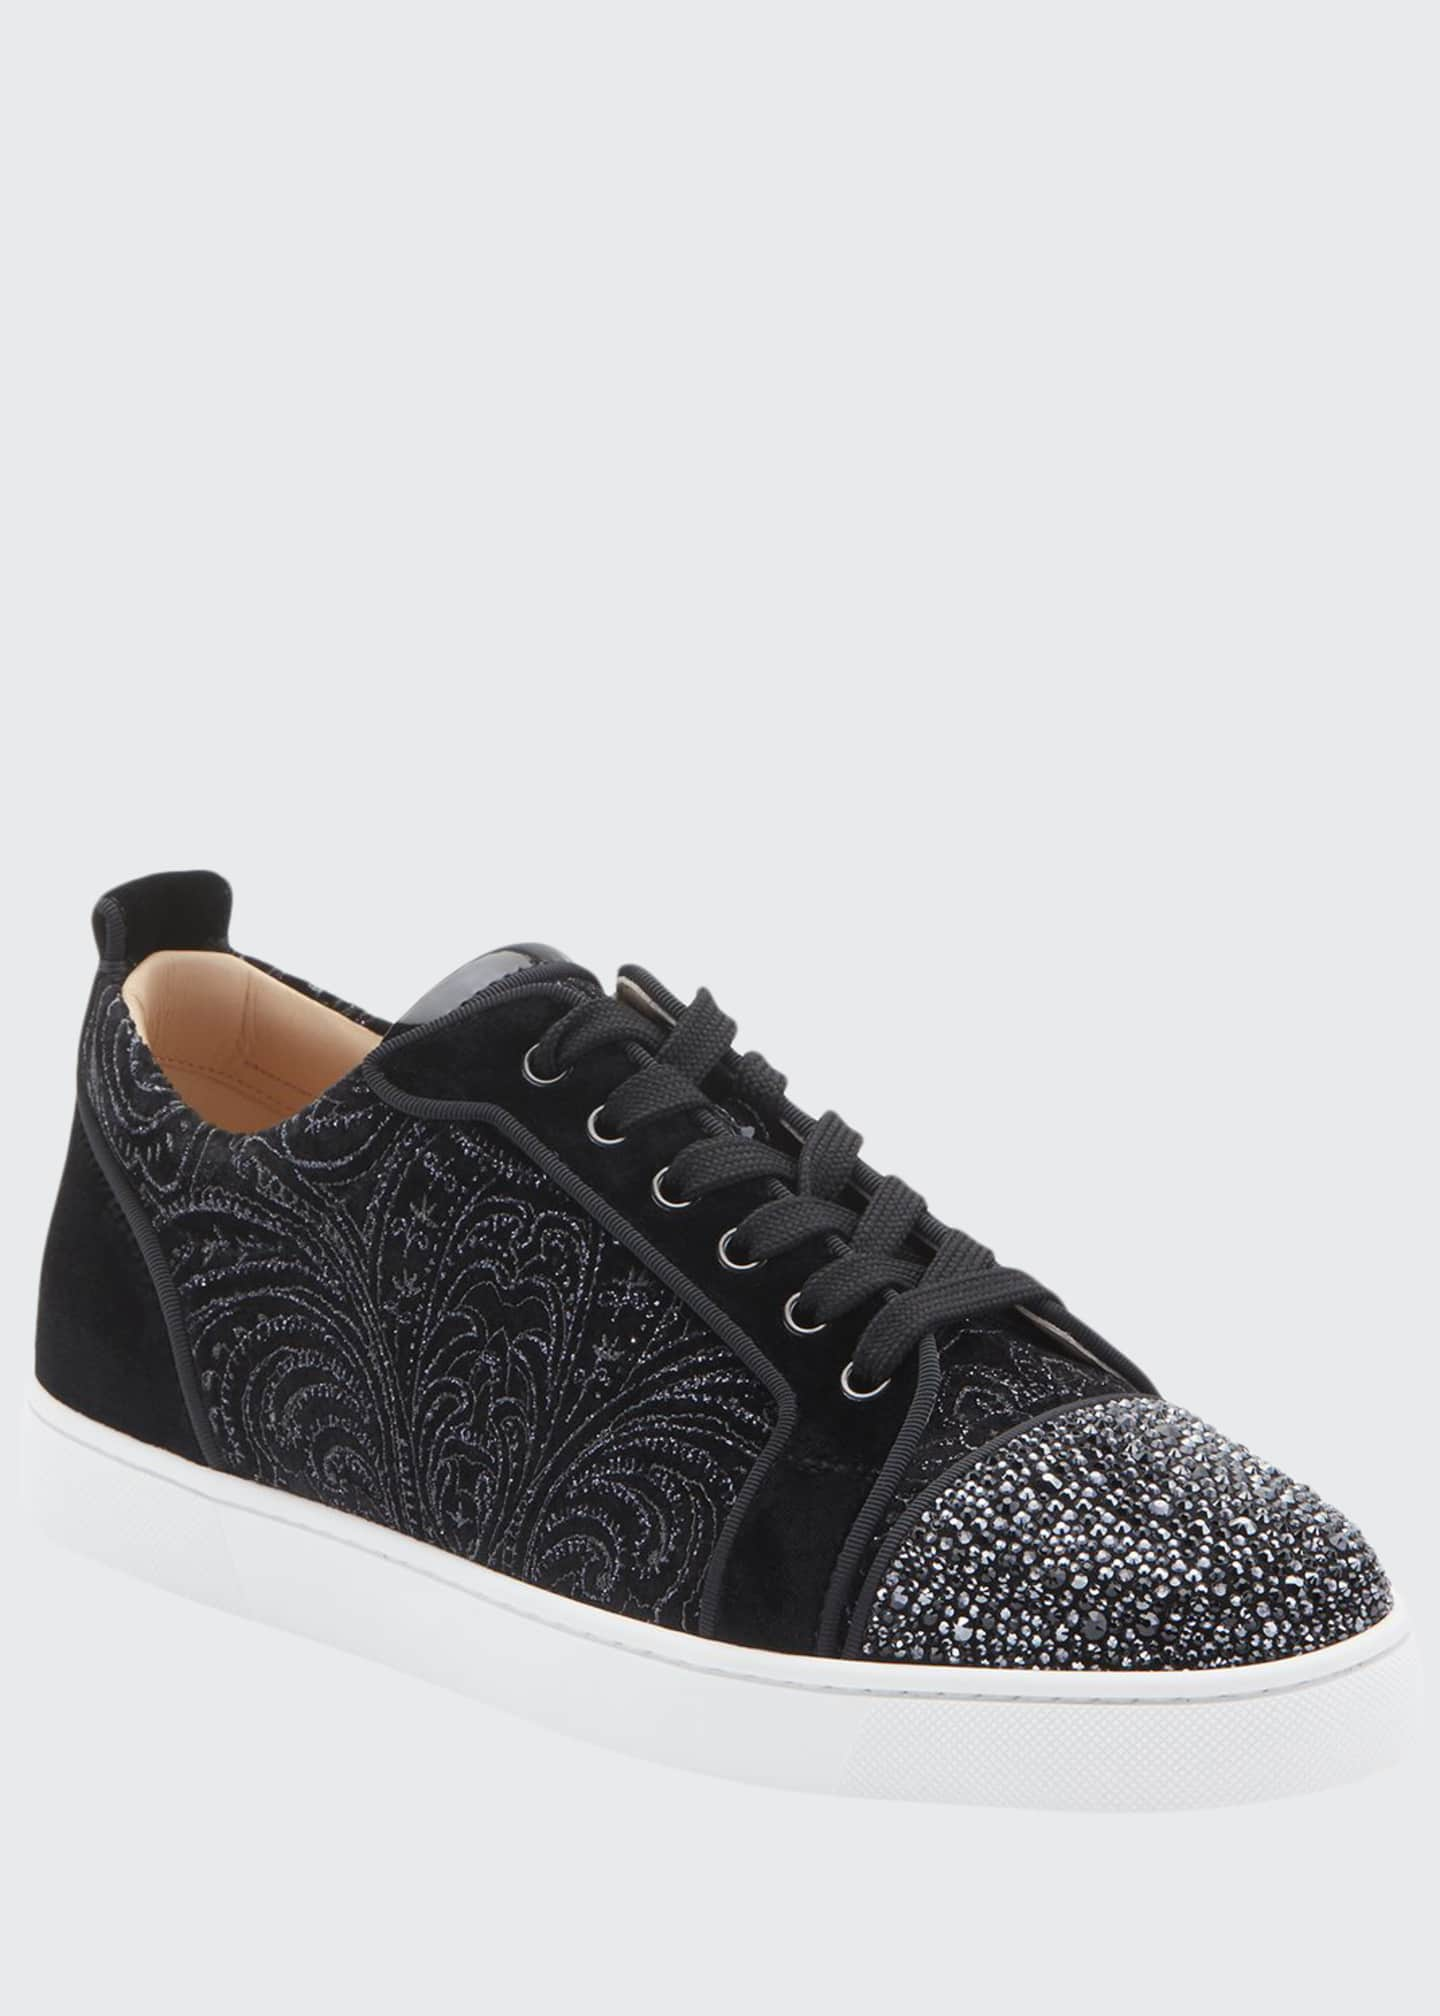 Christian Louboutin Men's Louis Junior Jeweled-Velour Low-Top